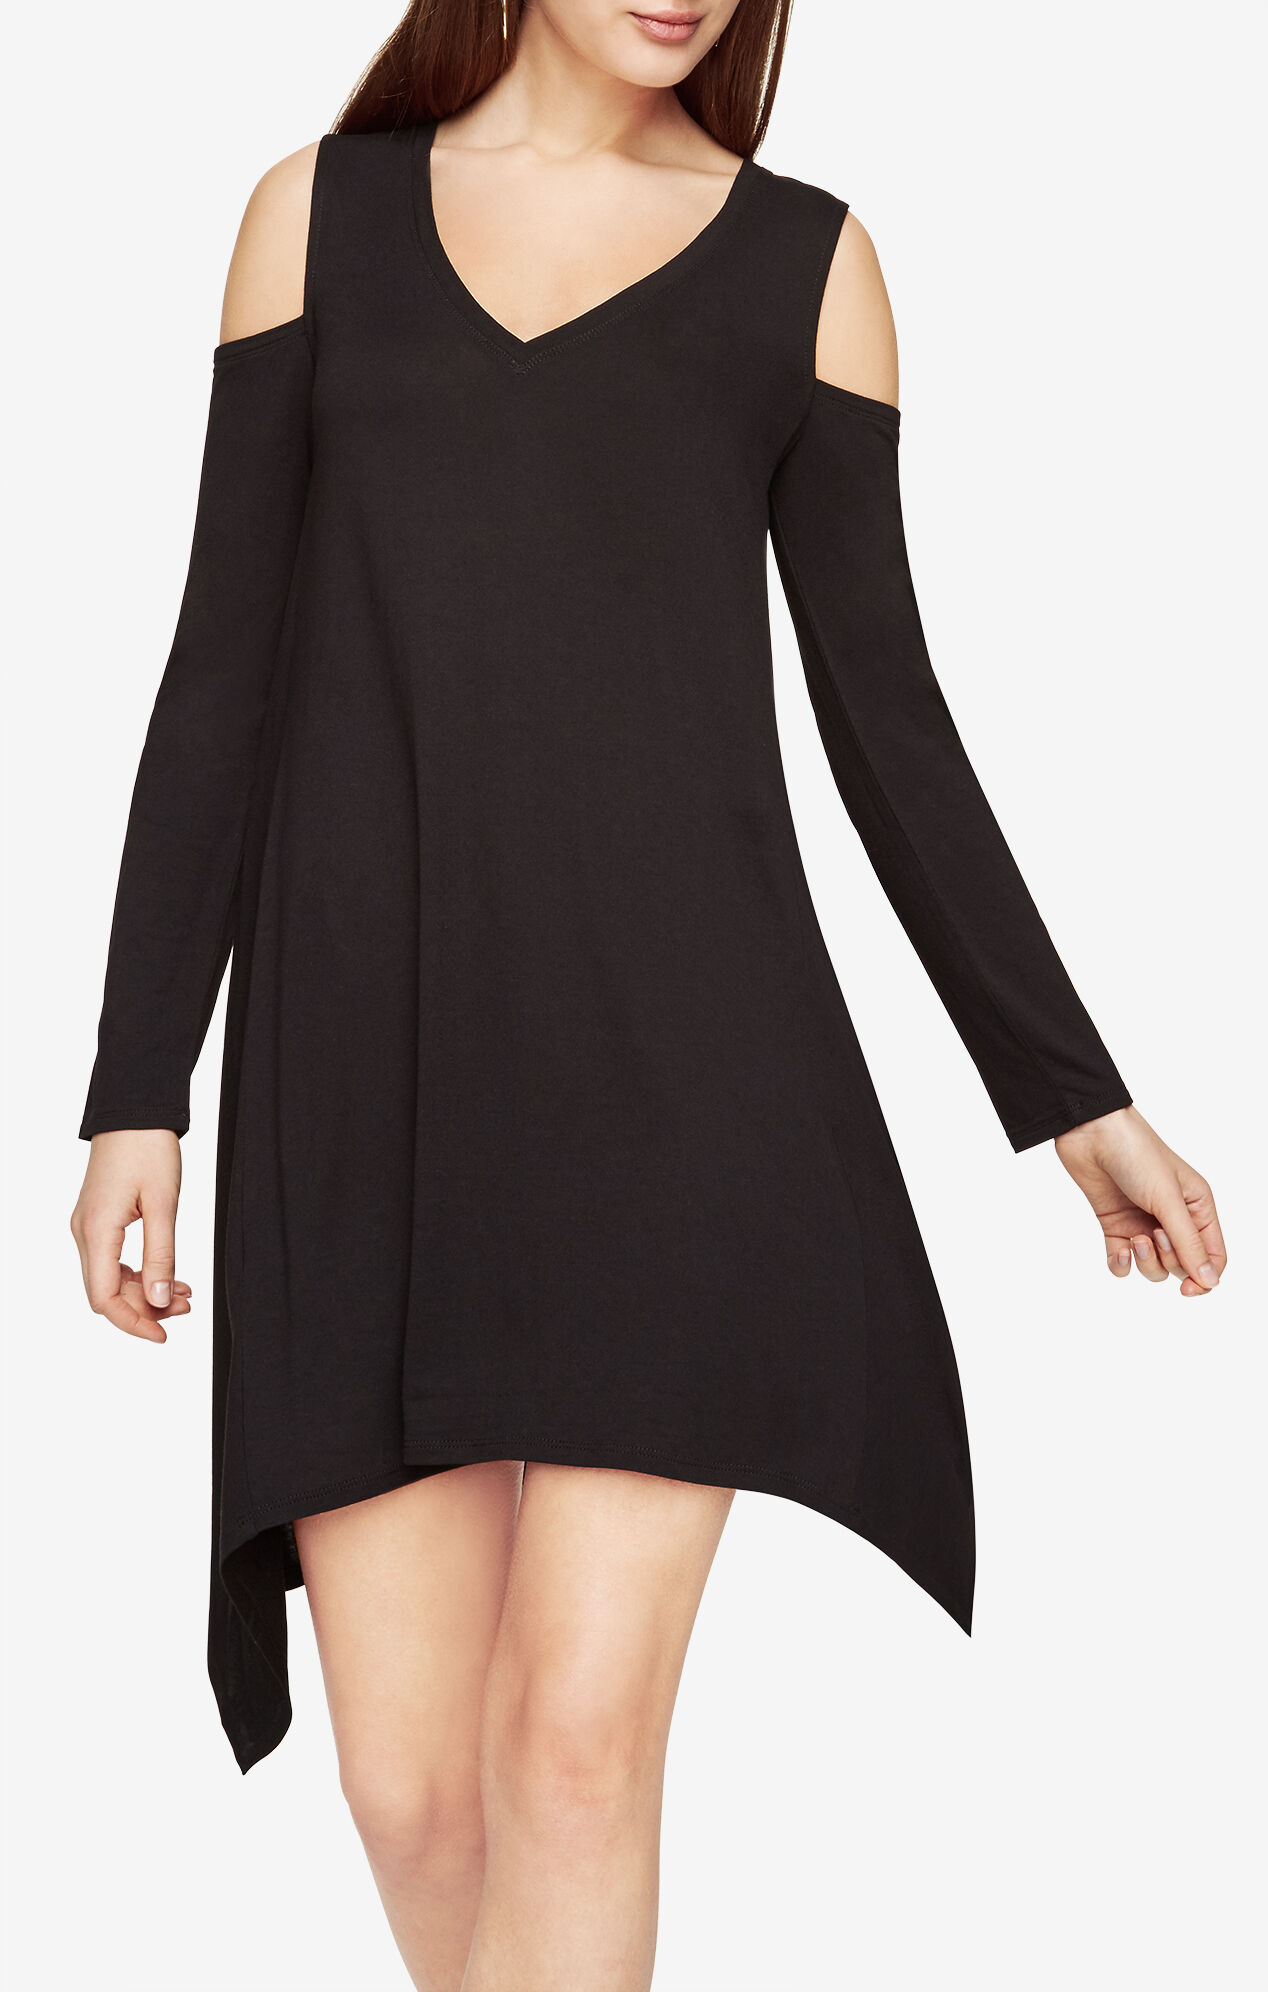 Black dress yellow accessories - Kirby Cold Shoulder Dress